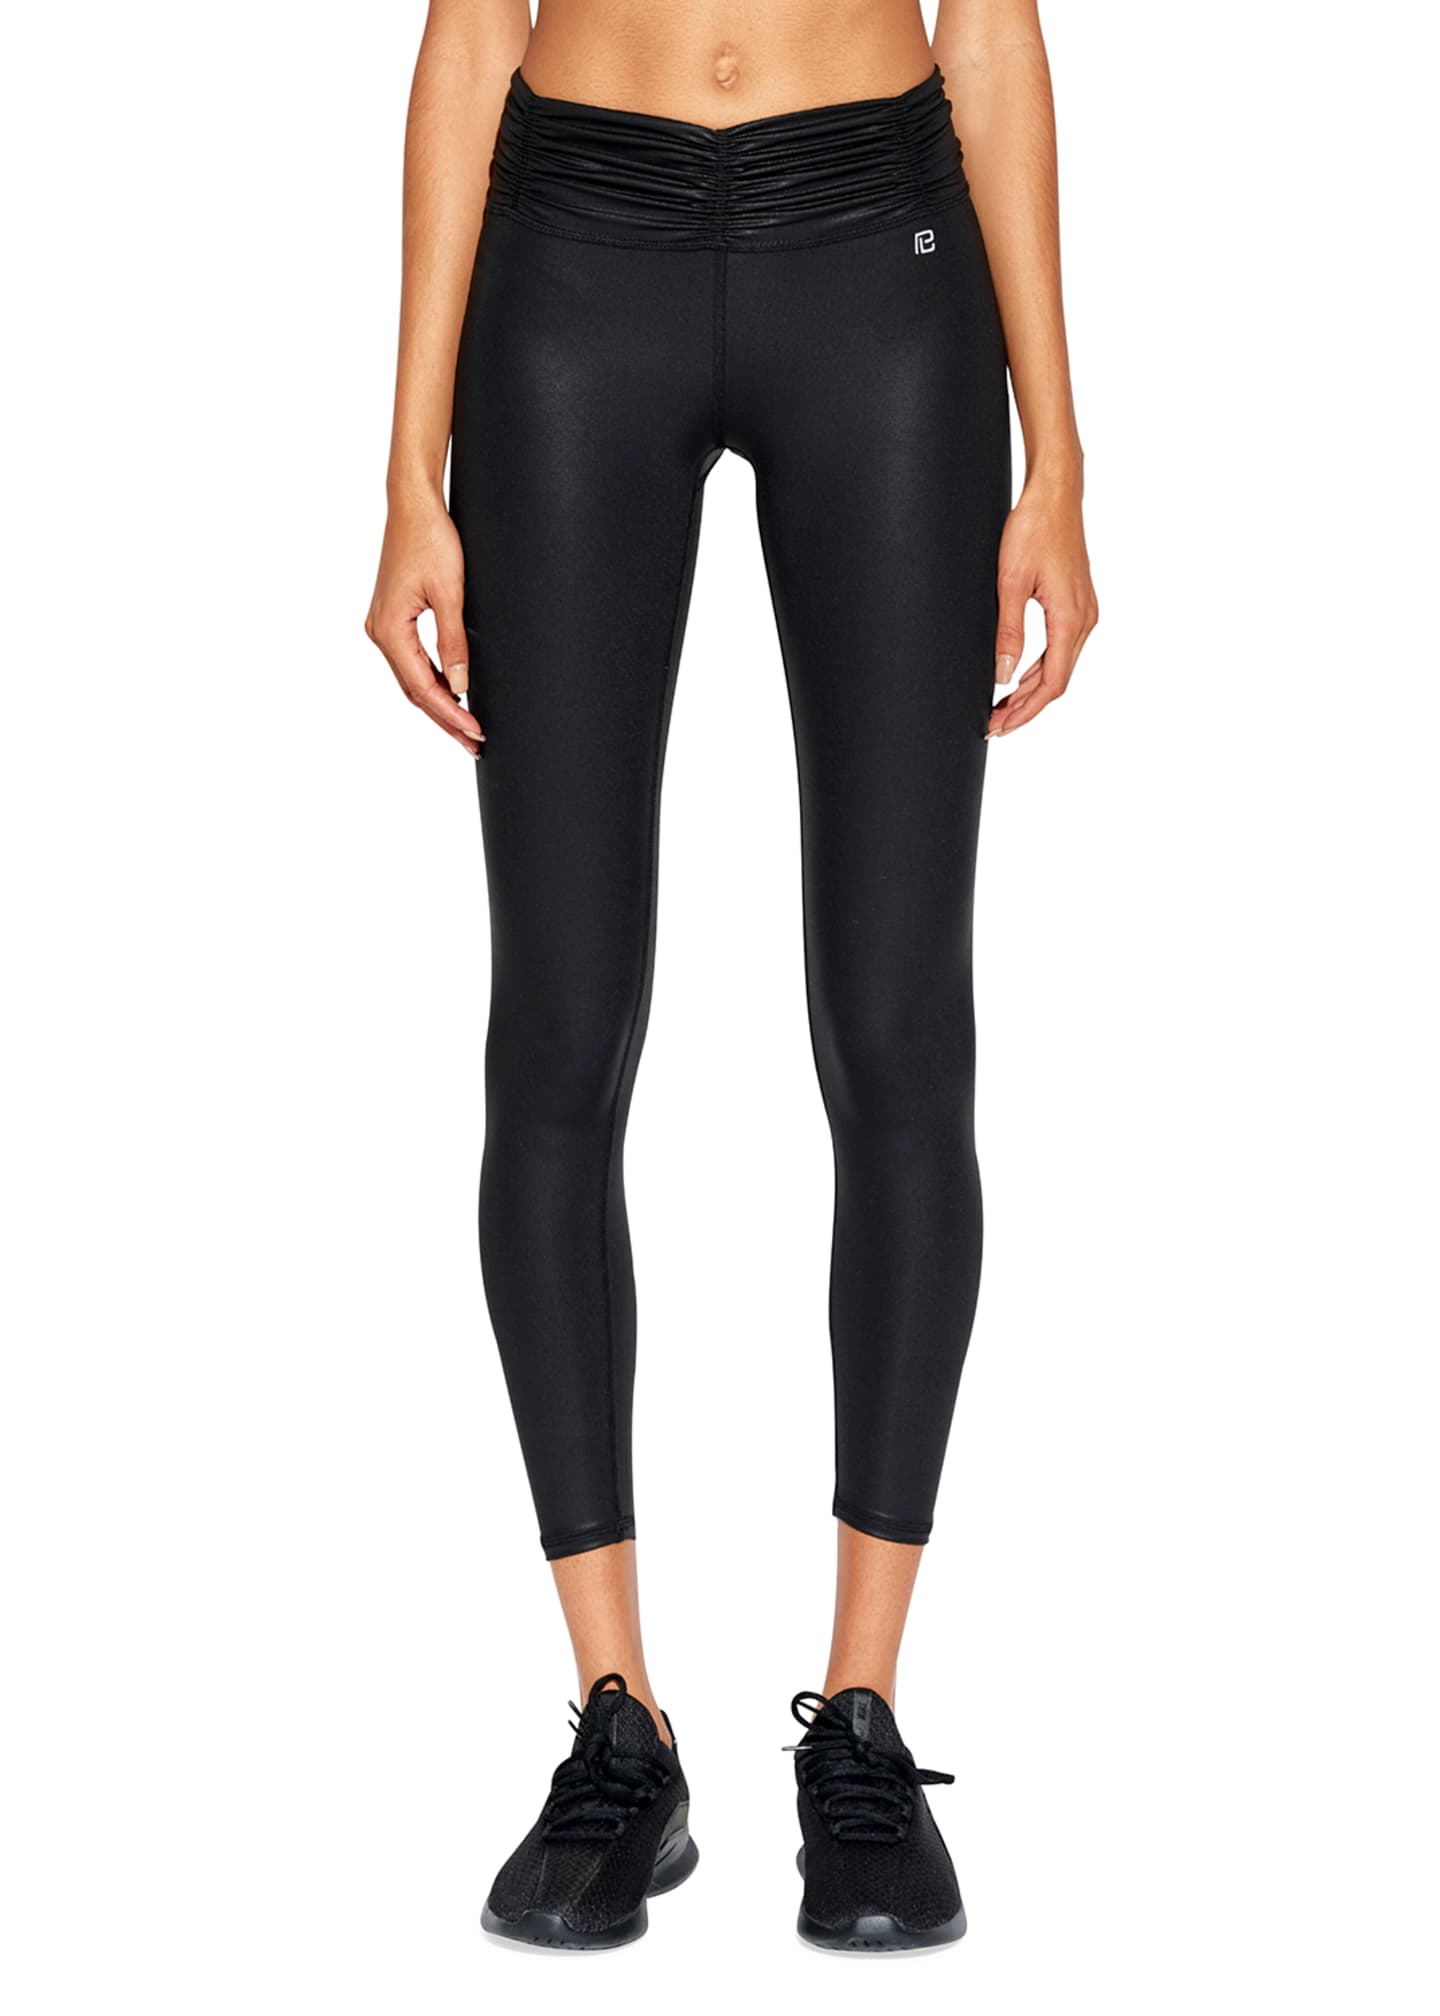 Body Language Sportswear Reve Ankle Leggings